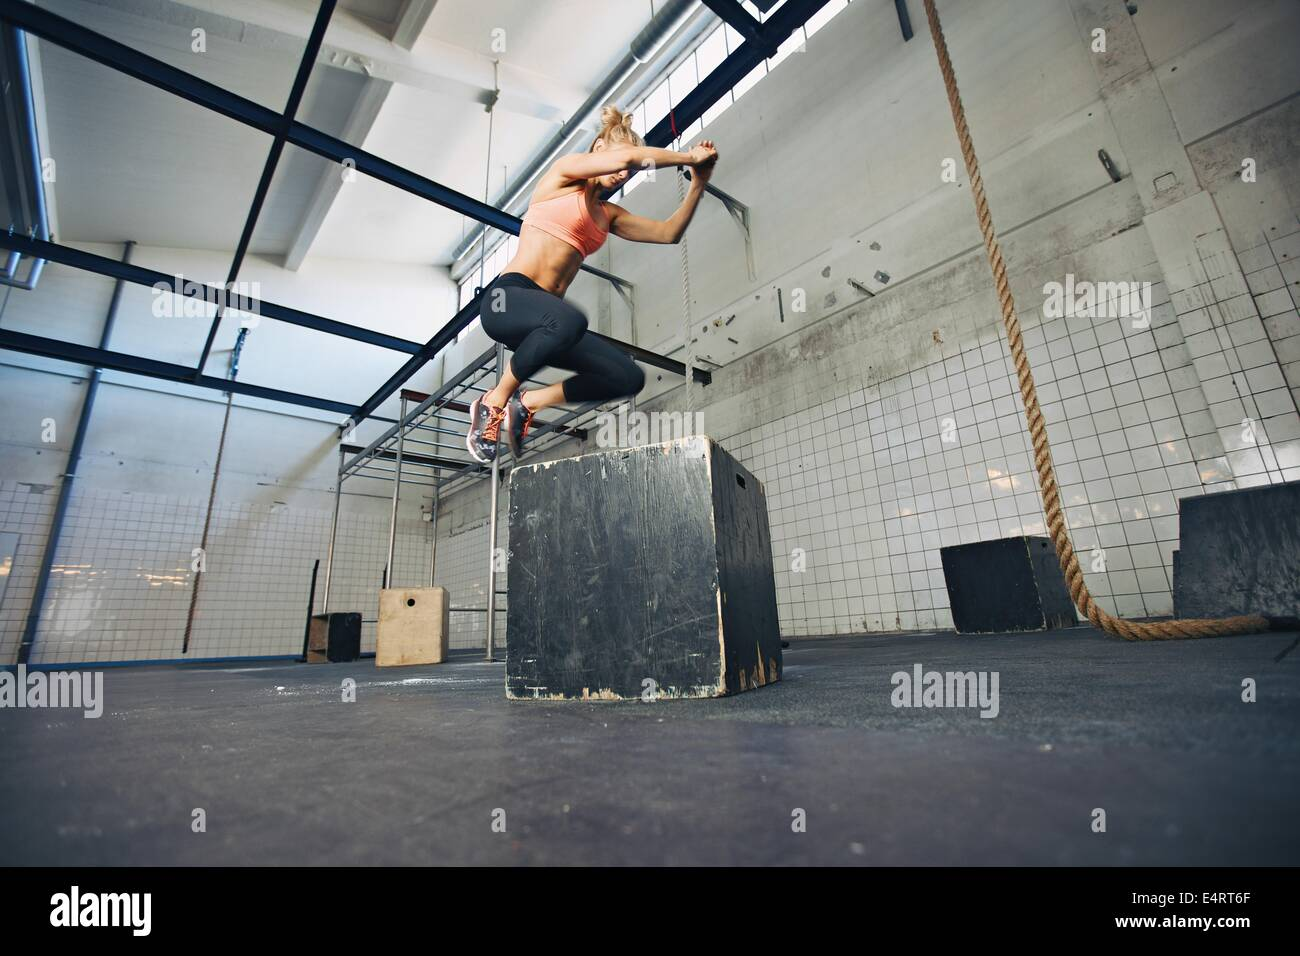 Low angle view of young female athlete box jumping at a crossfit gym. Fit woman is performing box jumps at gym. - Stock Image